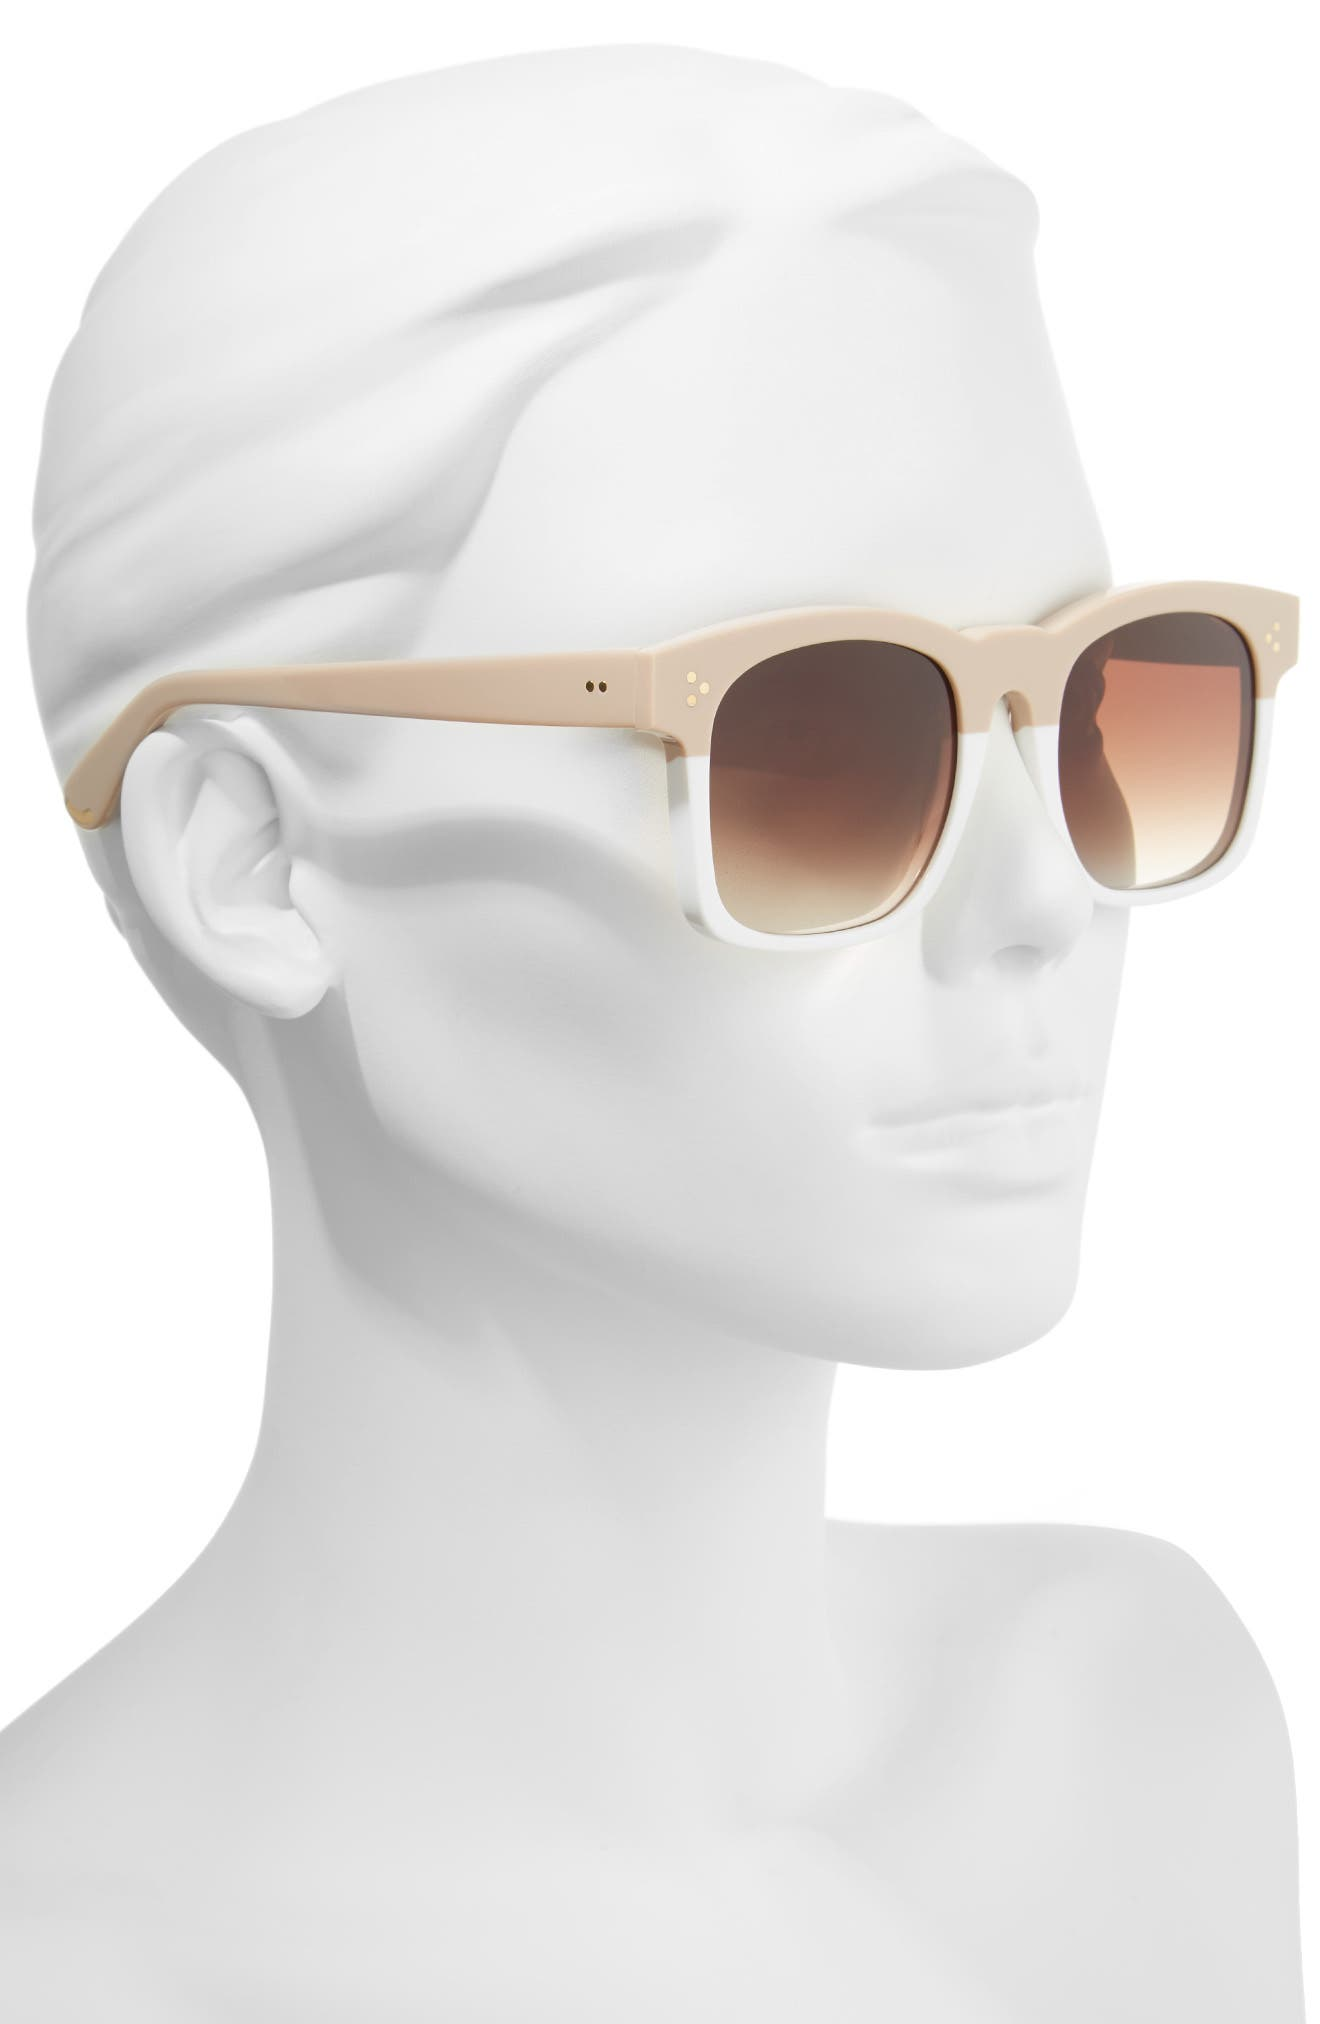 Gaudy Zero 51mm Flat Square Sunglasses,                             Alternate thumbnail 2, color,                             Cream-White